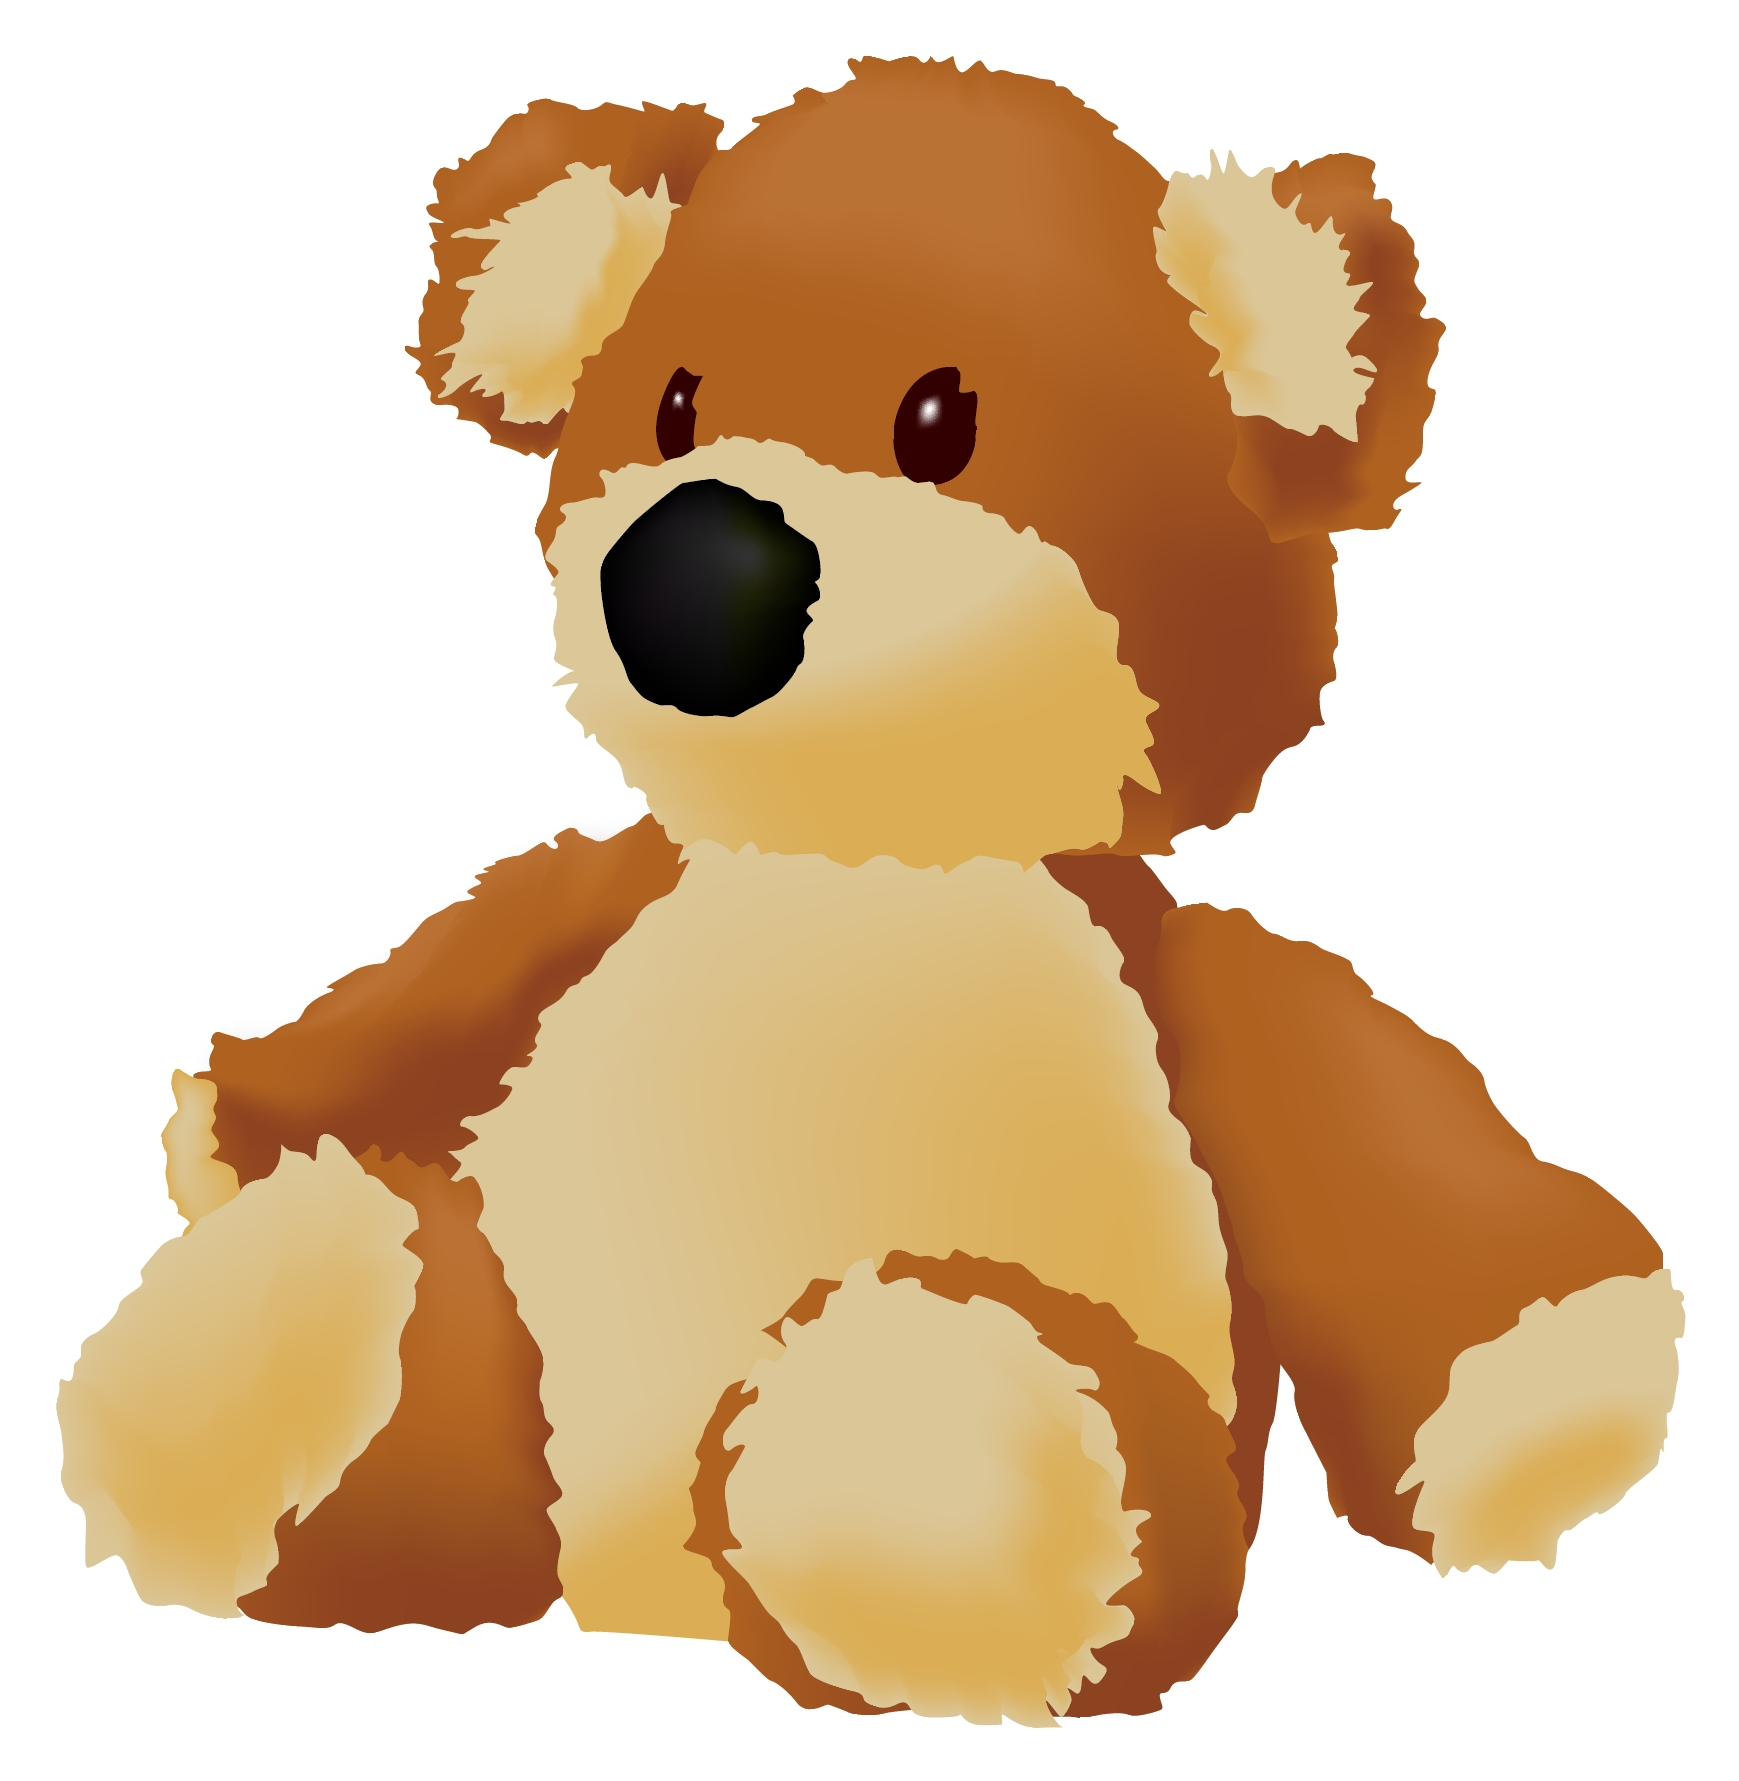 Teddy bear teddy free images at clker com vector clip art